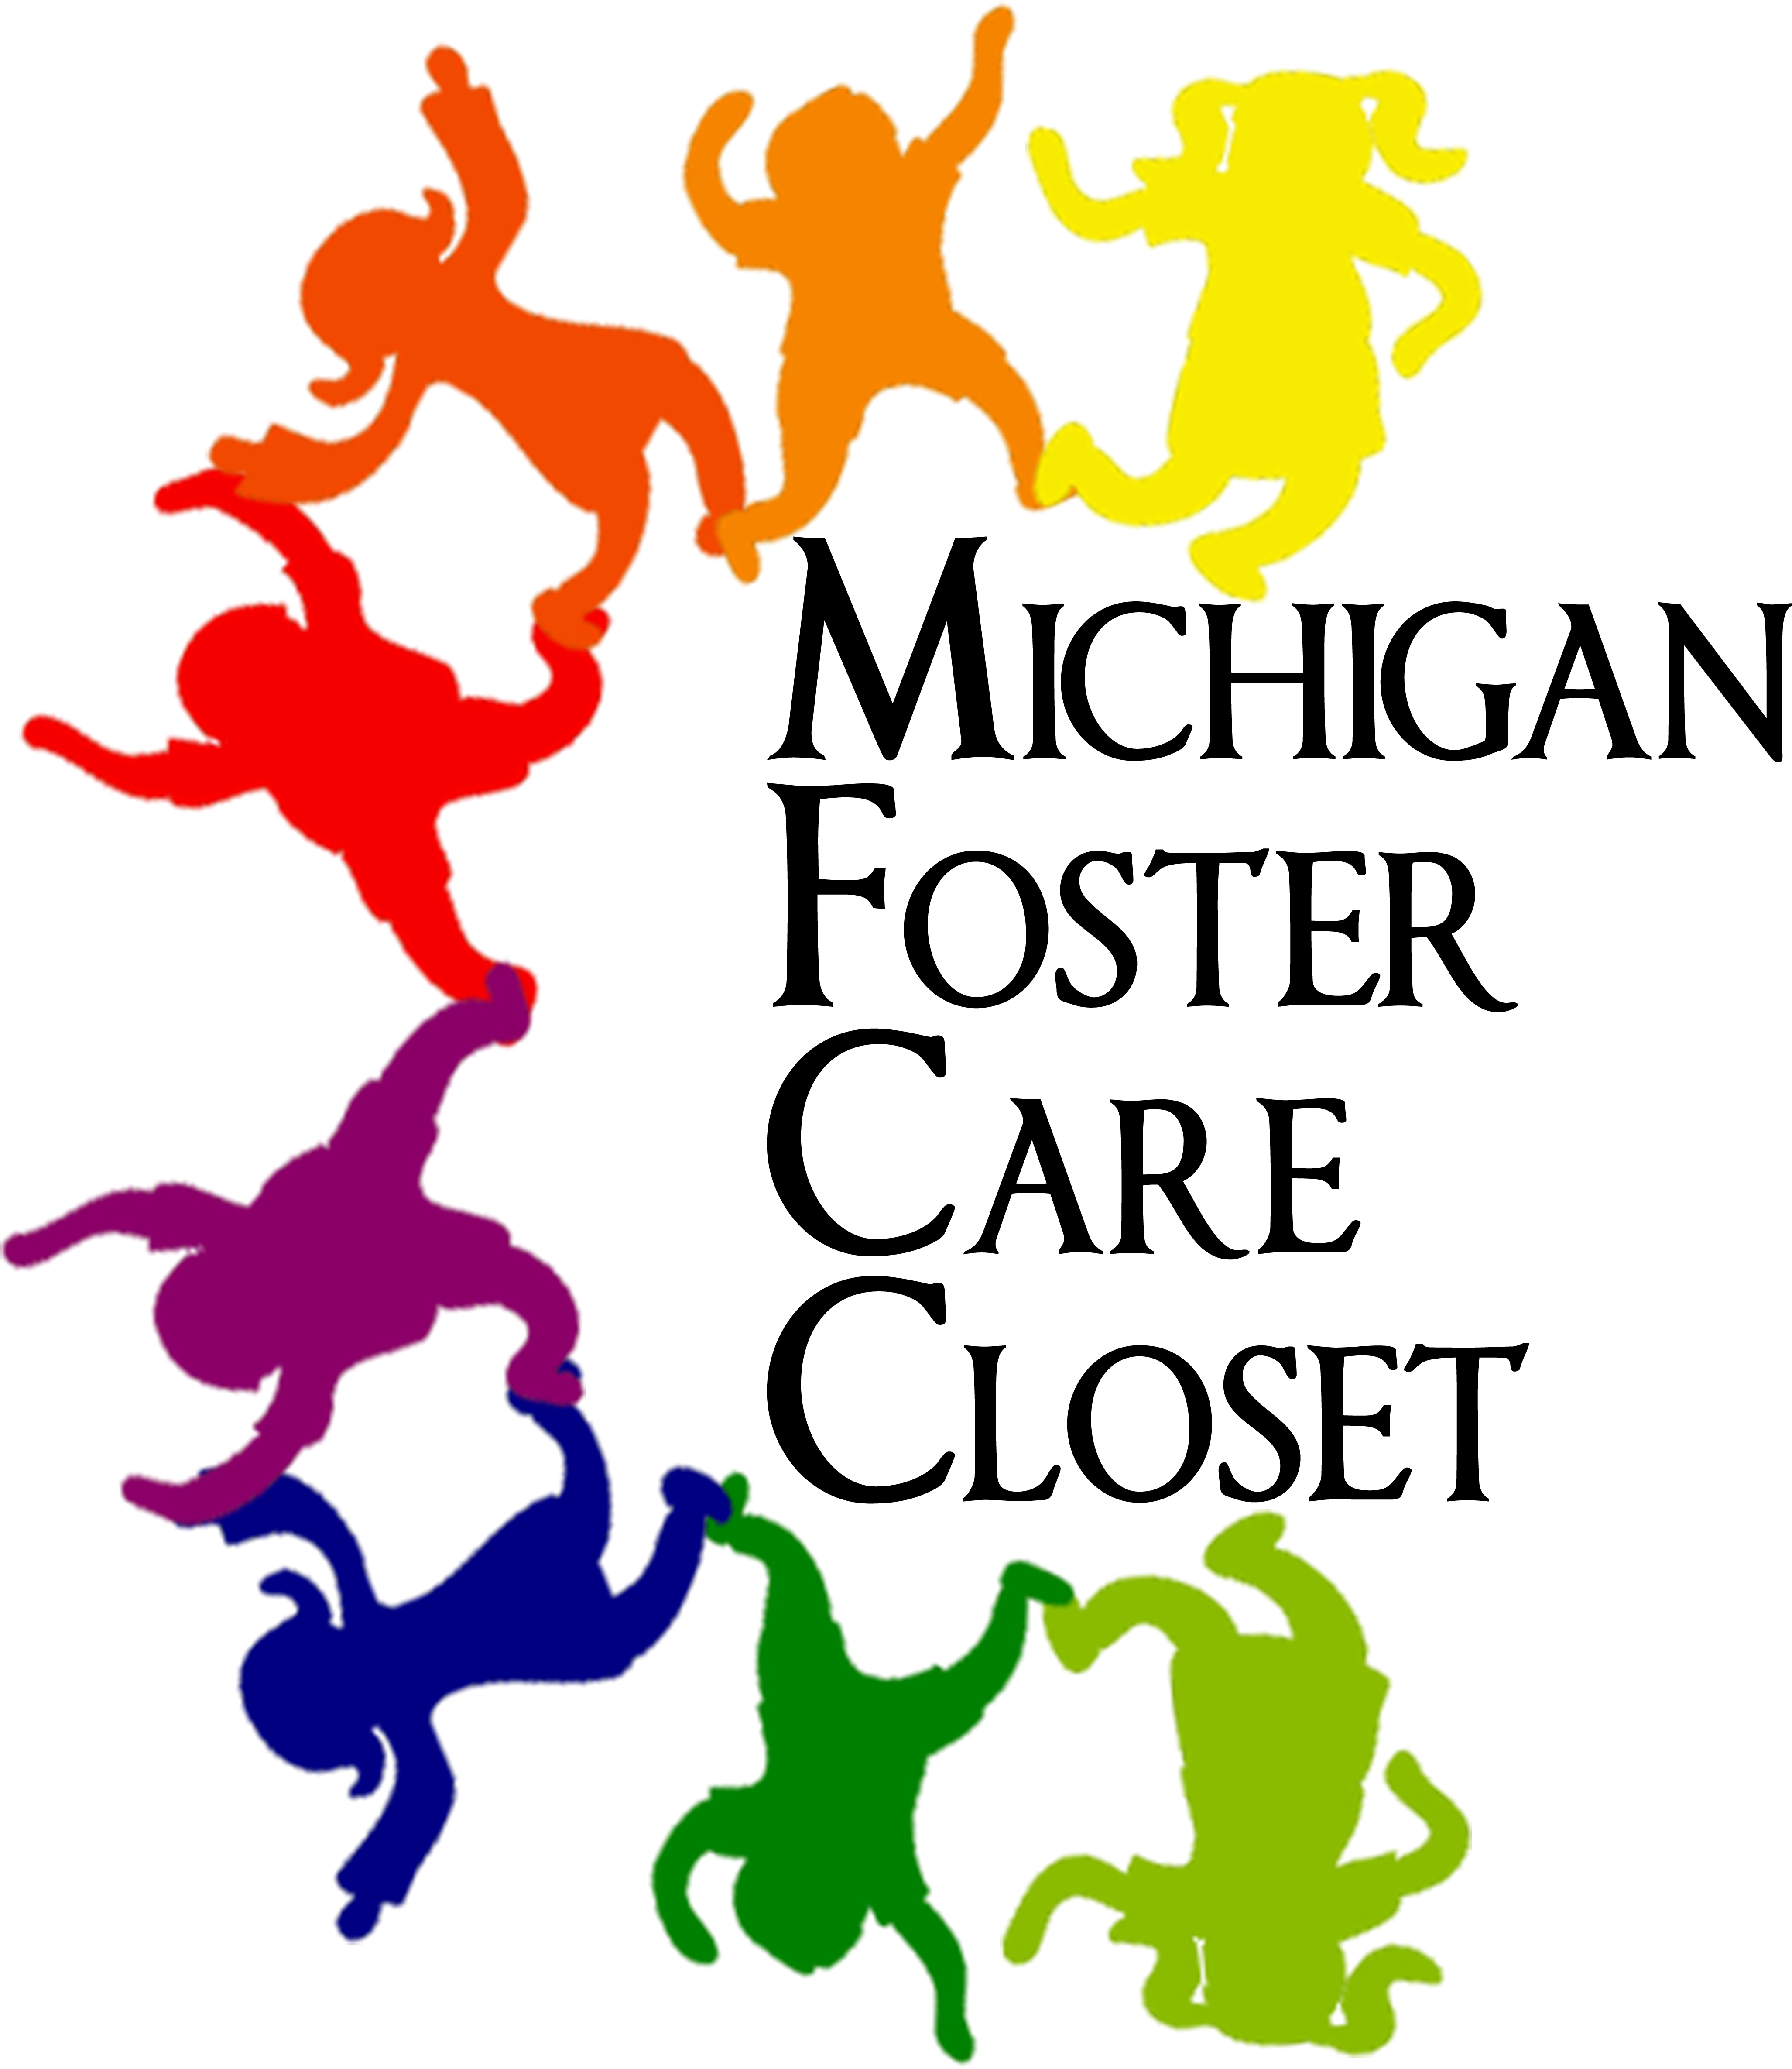 Stock drawing foster care. Closet clipart community